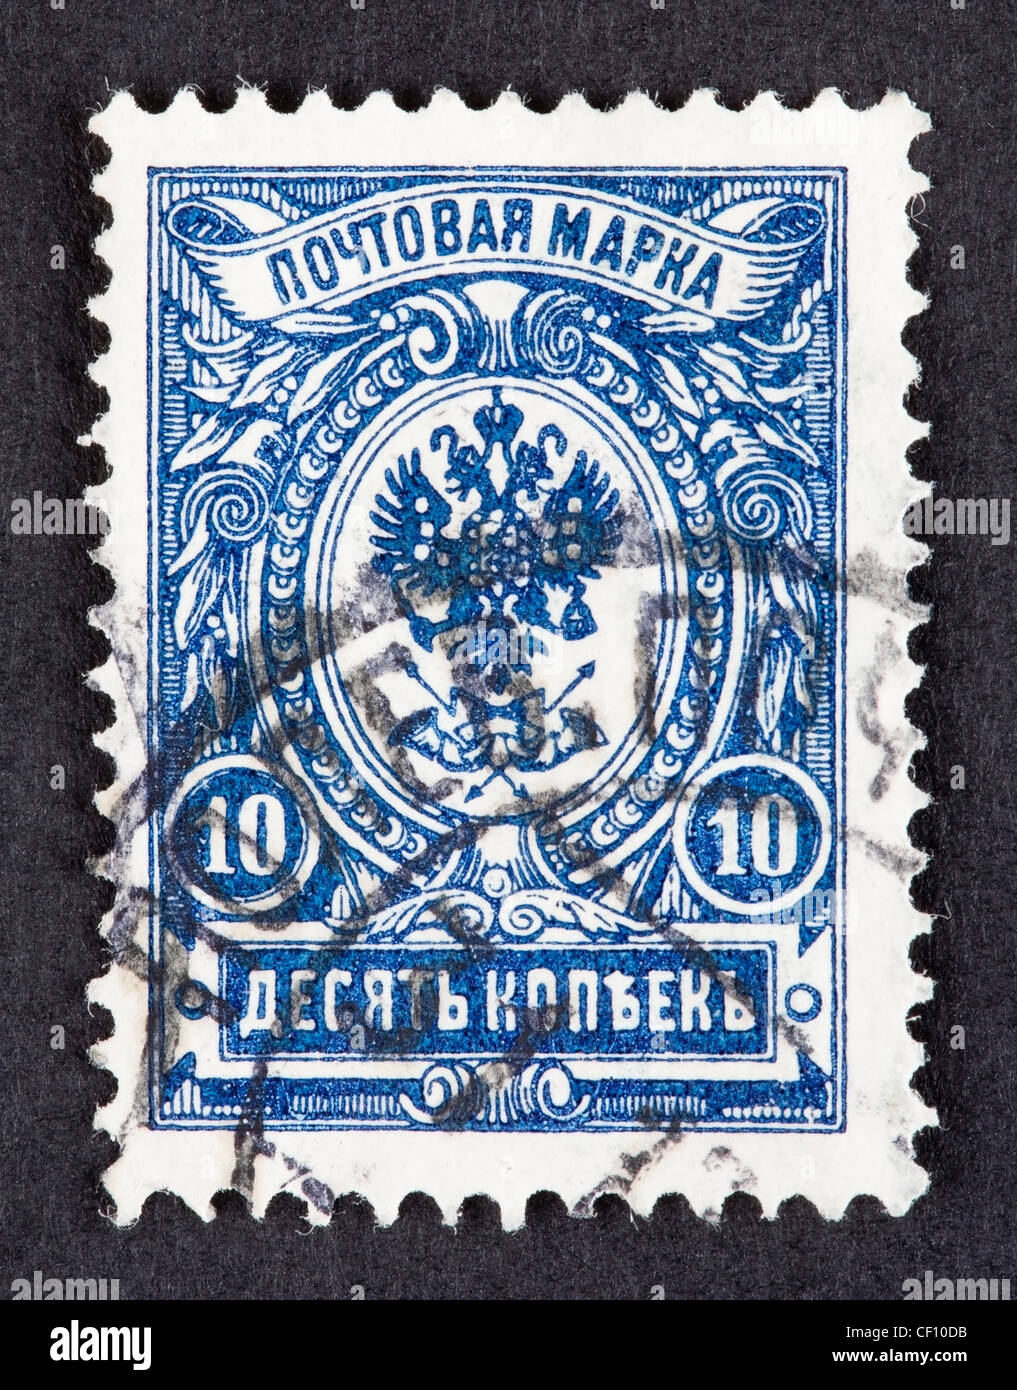 Old Russian Postage Stamps Stock Photos & Old Russian